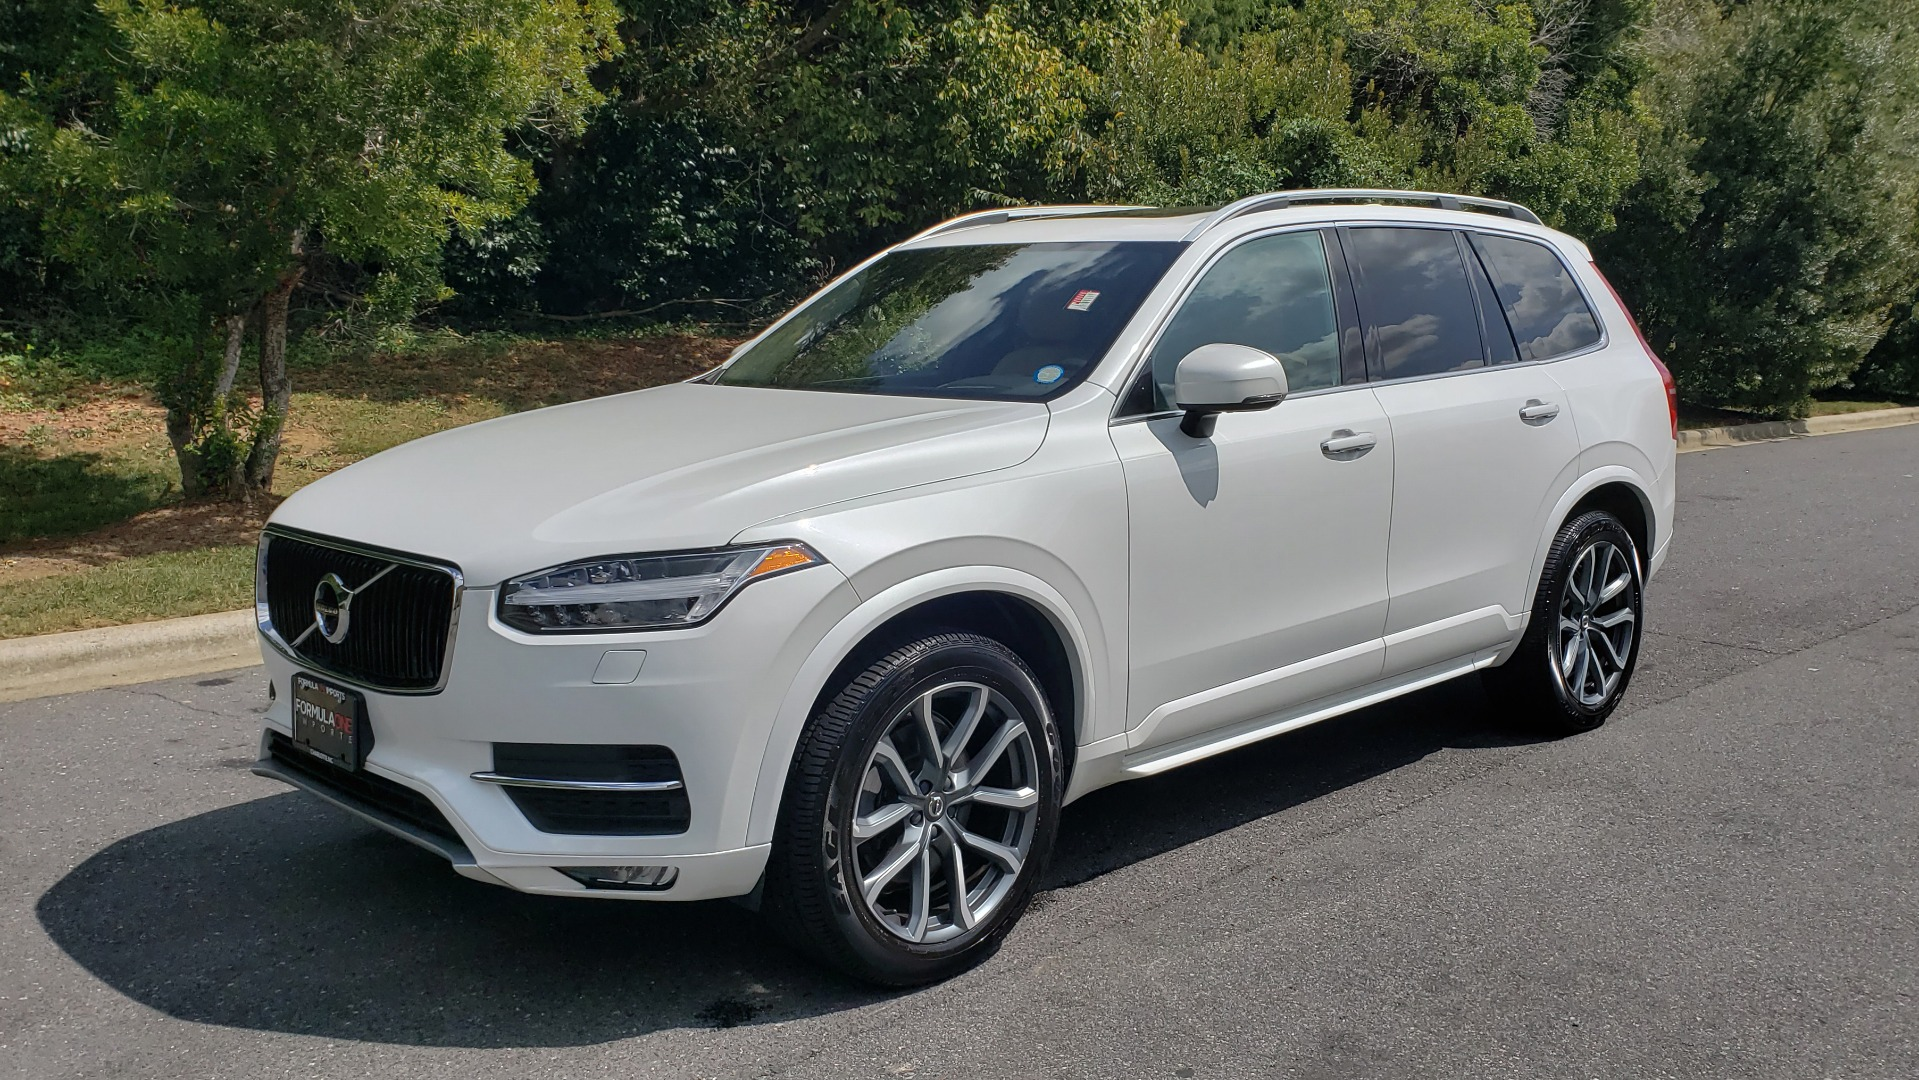 Used 2017 Volvo XC90 MOMENTUM PLUS T6 AWD / NAV / VISION / PROTECTION PKG for sale $34,995 at Formula Imports in Charlotte NC 28227 6